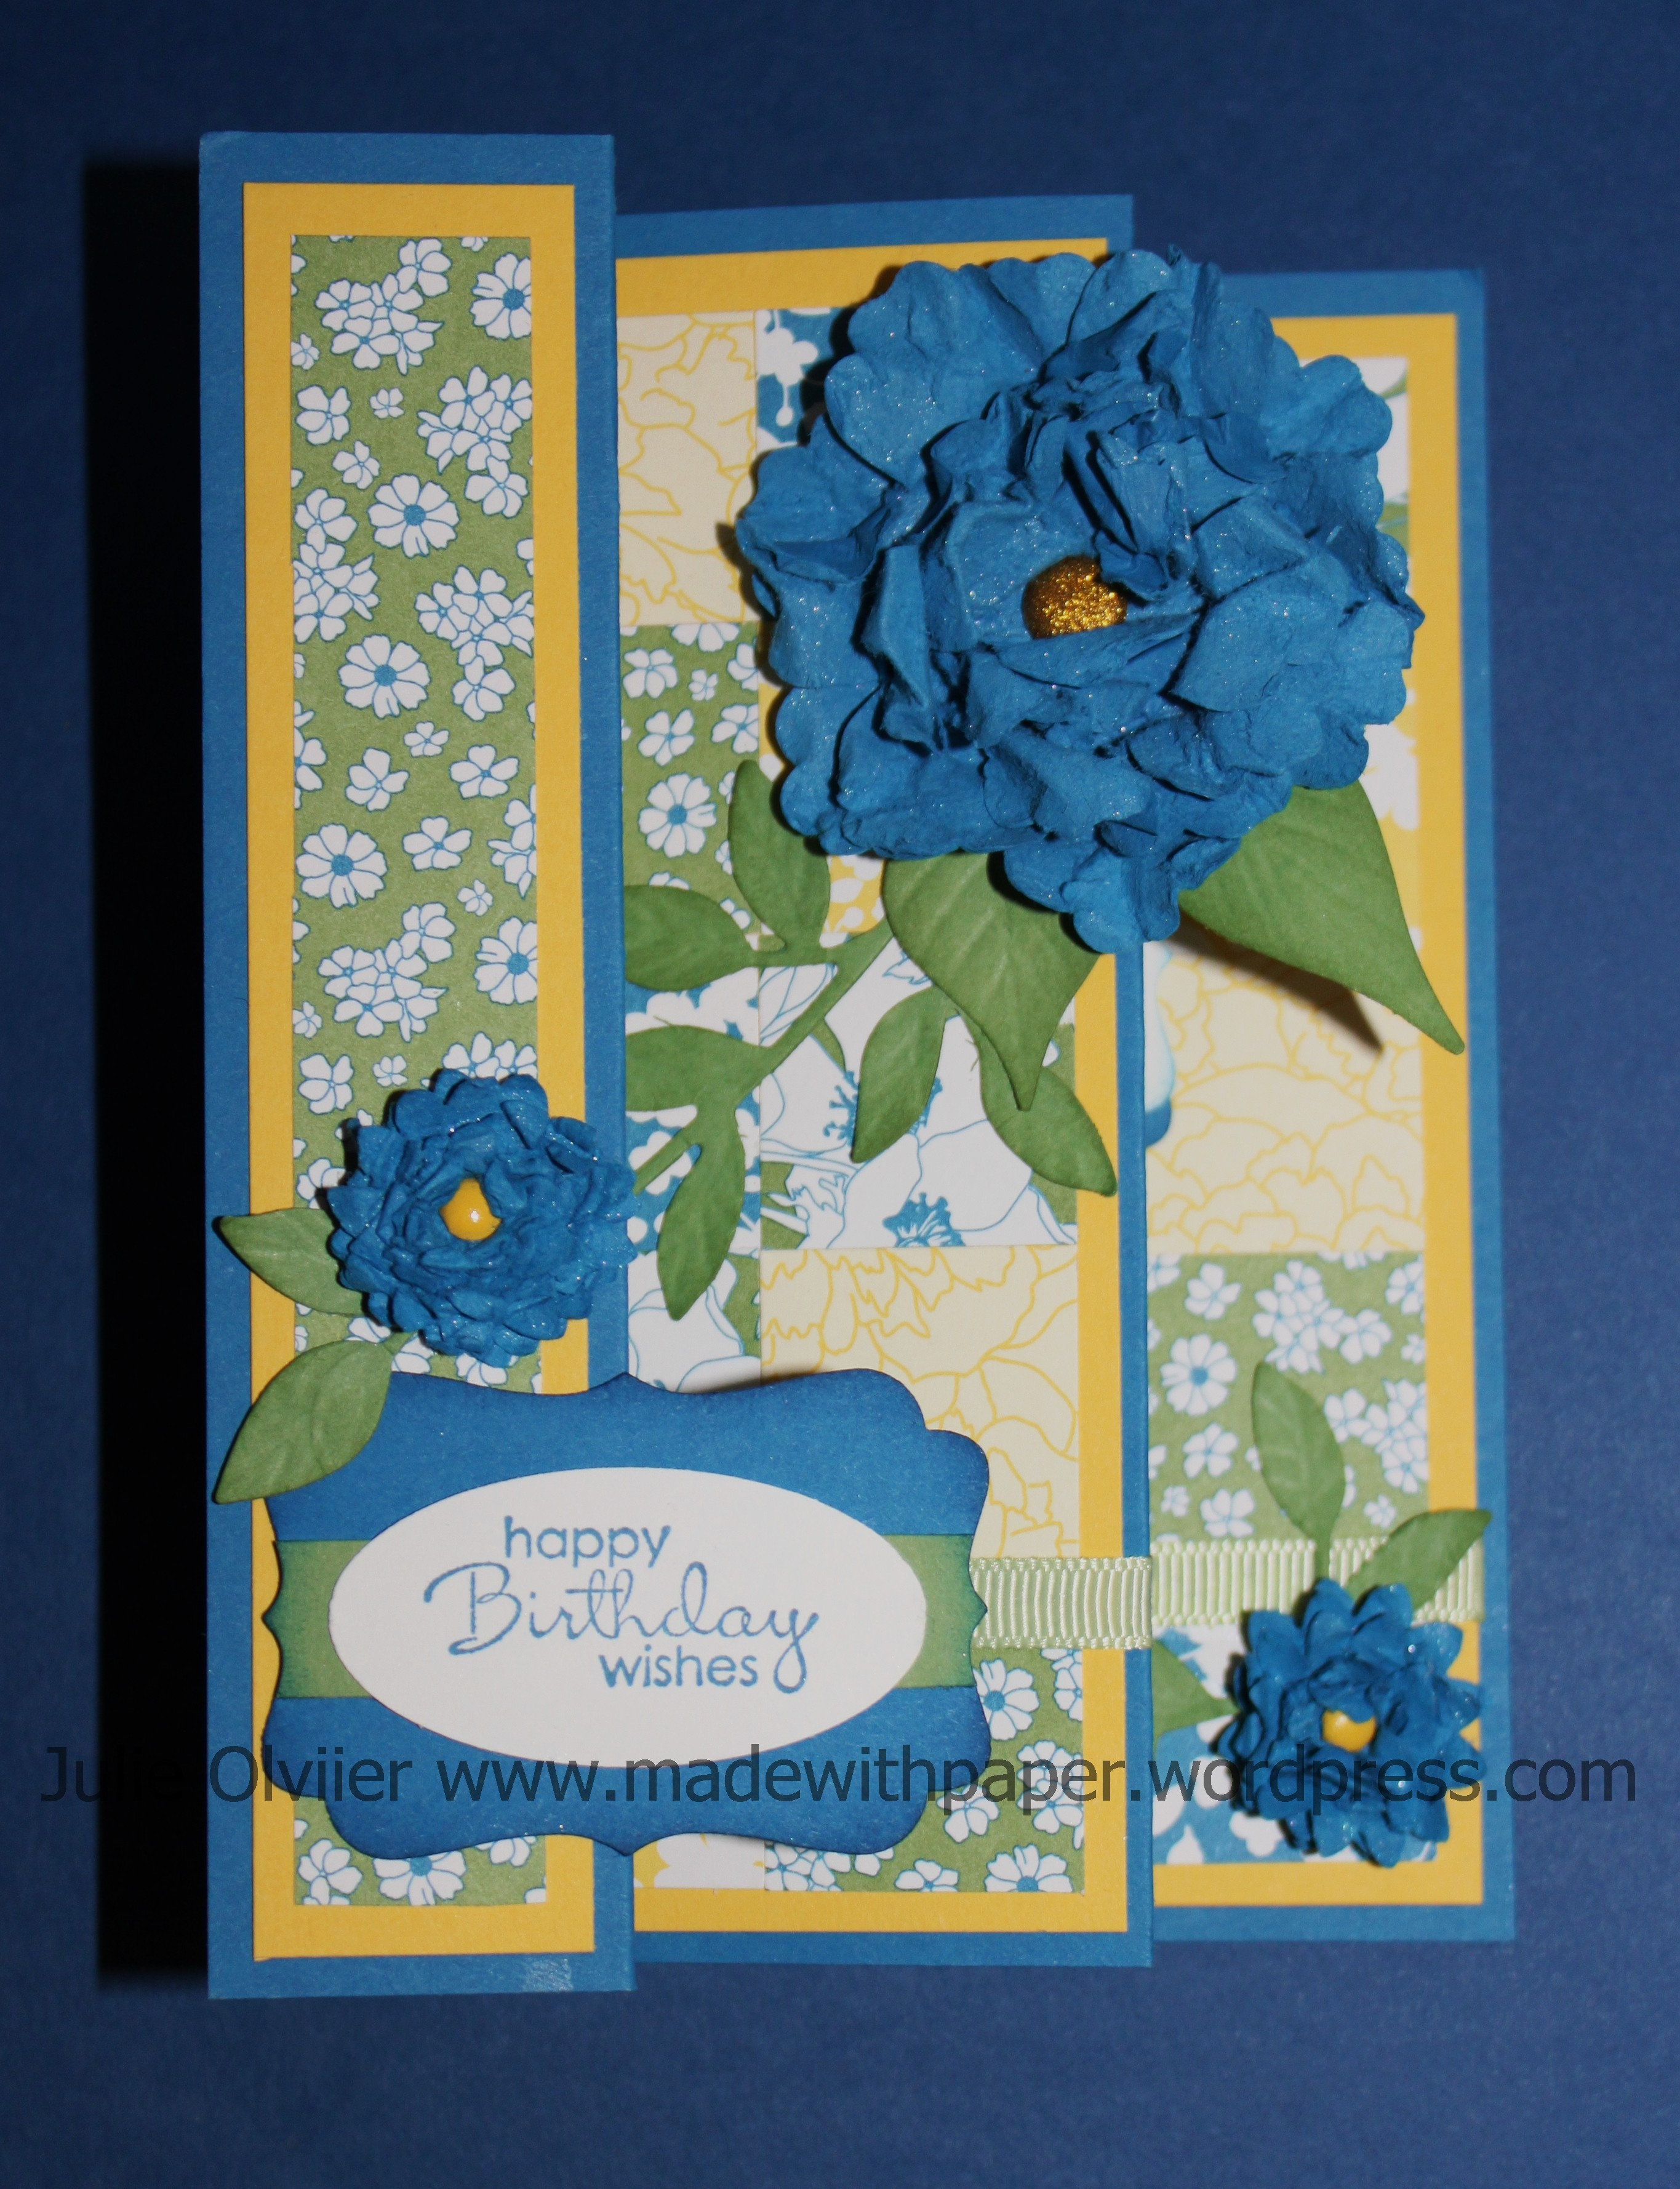 tri fold card made with paper